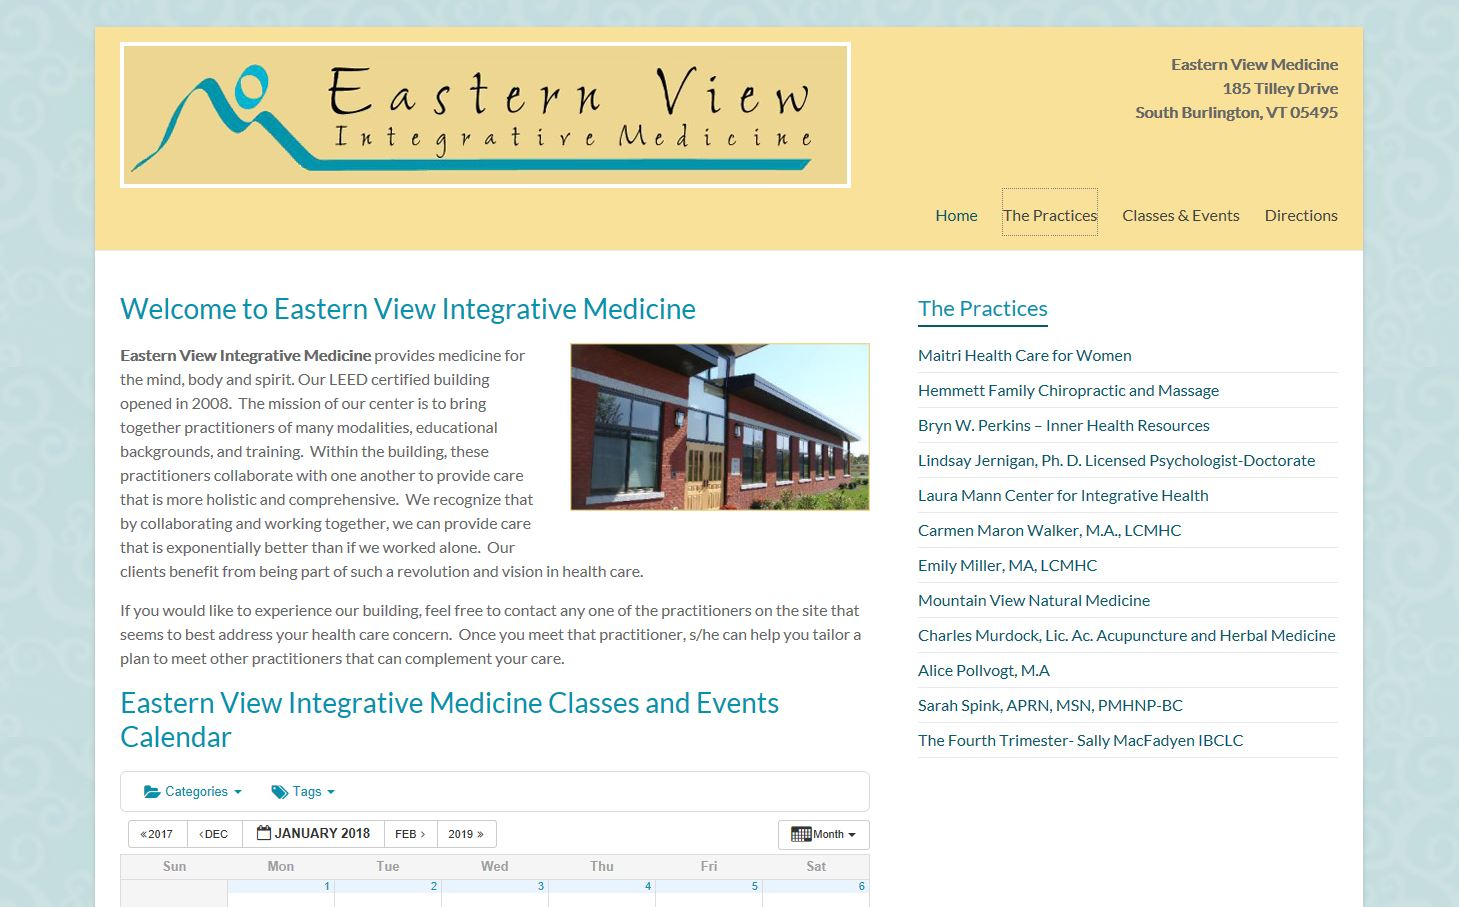 Eatern View Integrative Medicine